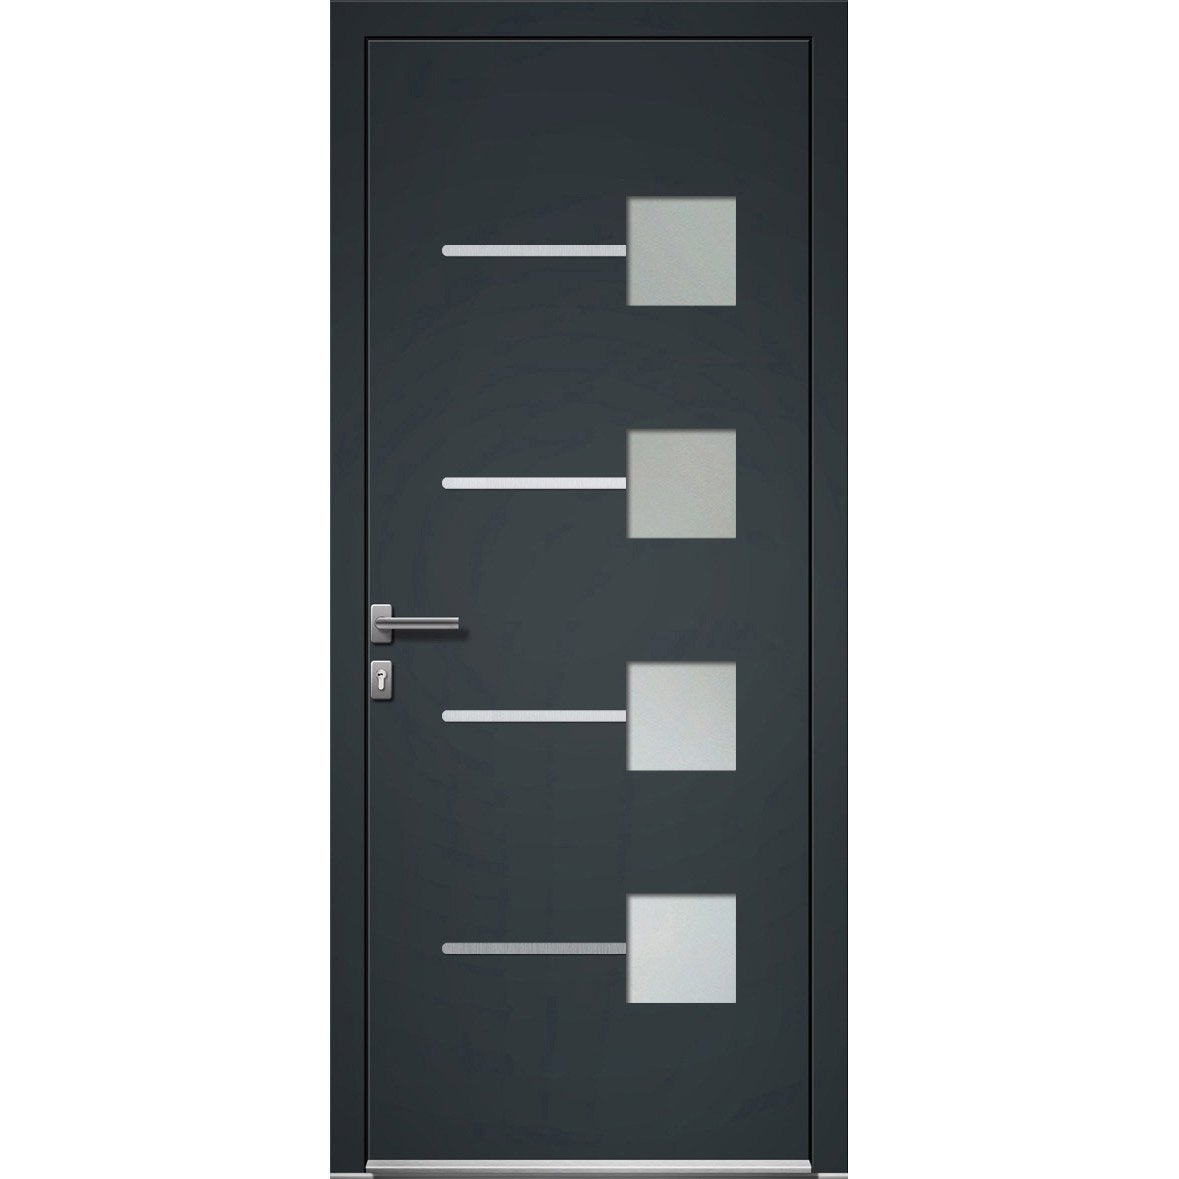 porte d 39 entr e aluminium soria artens poussant droit h. Black Bedroom Furniture Sets. Home Design Ideas